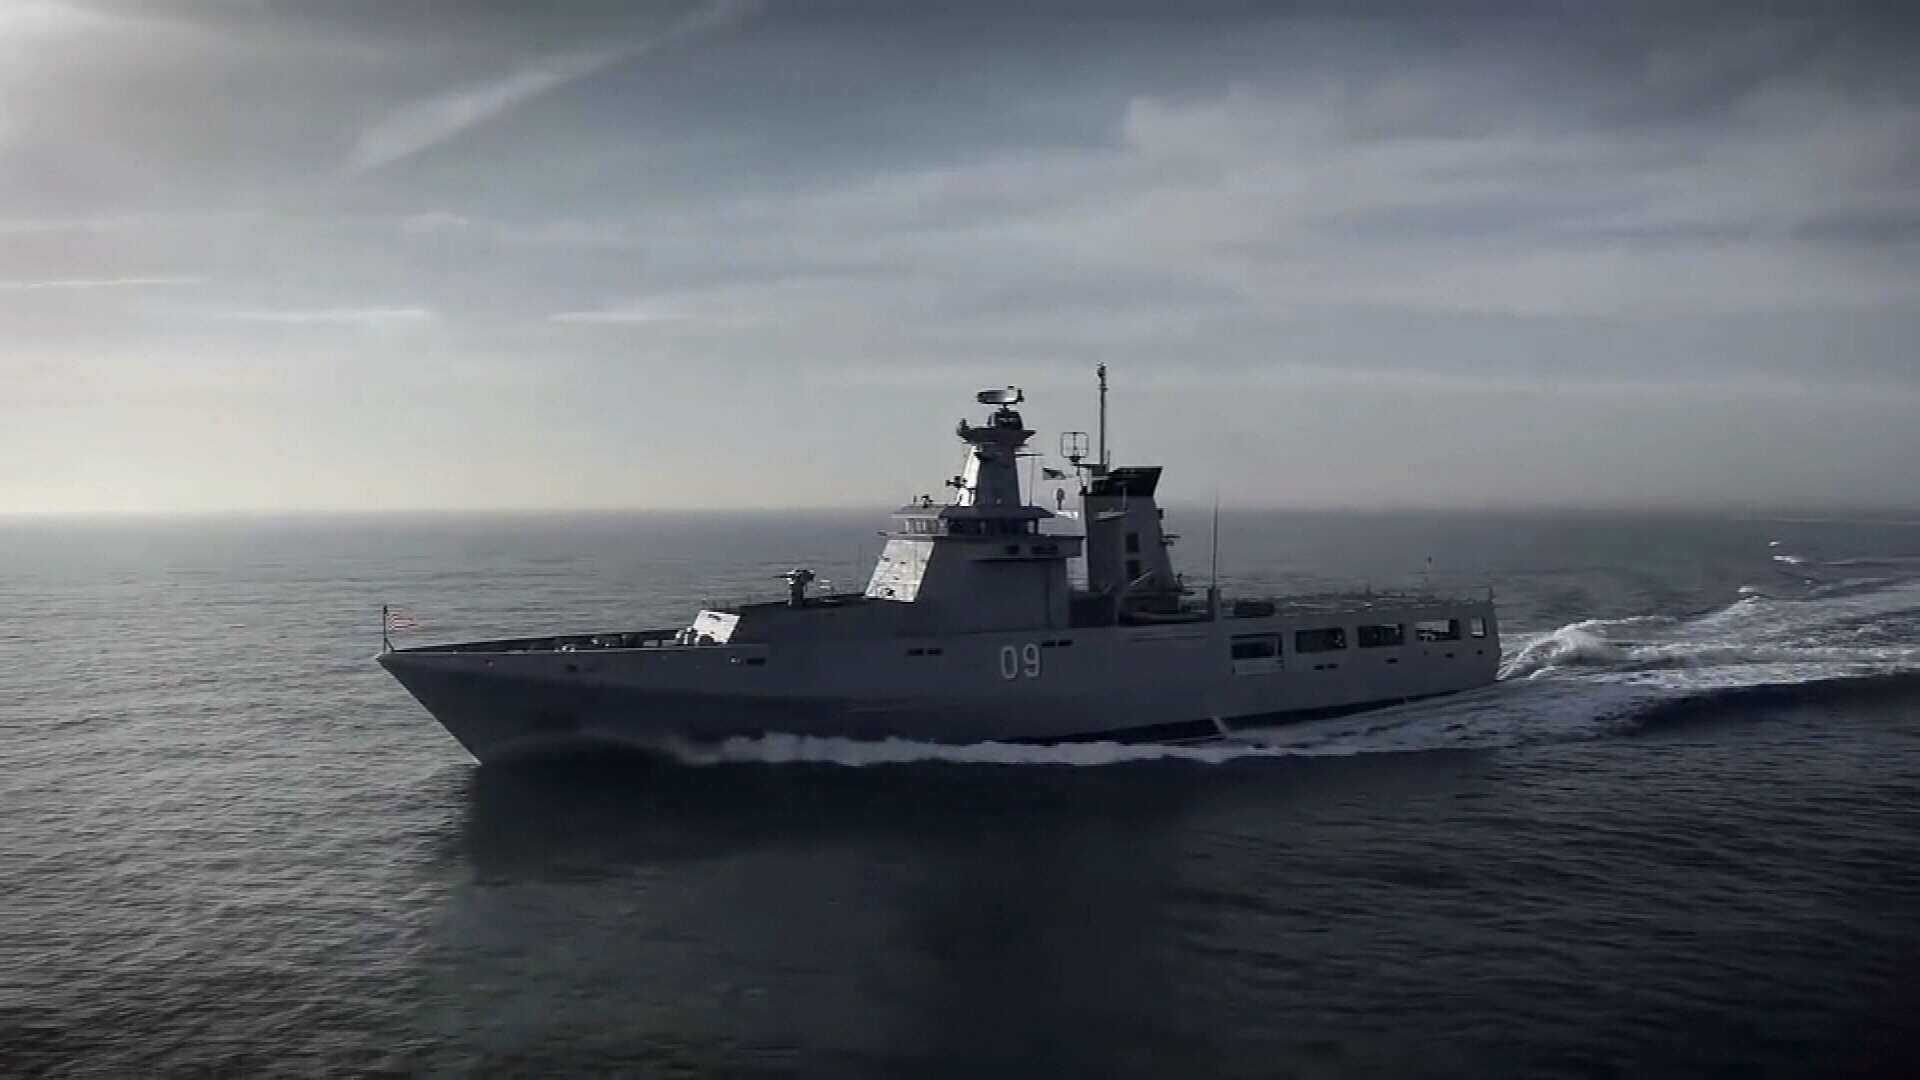 Offshore patrol vessel construction begins in South Australia